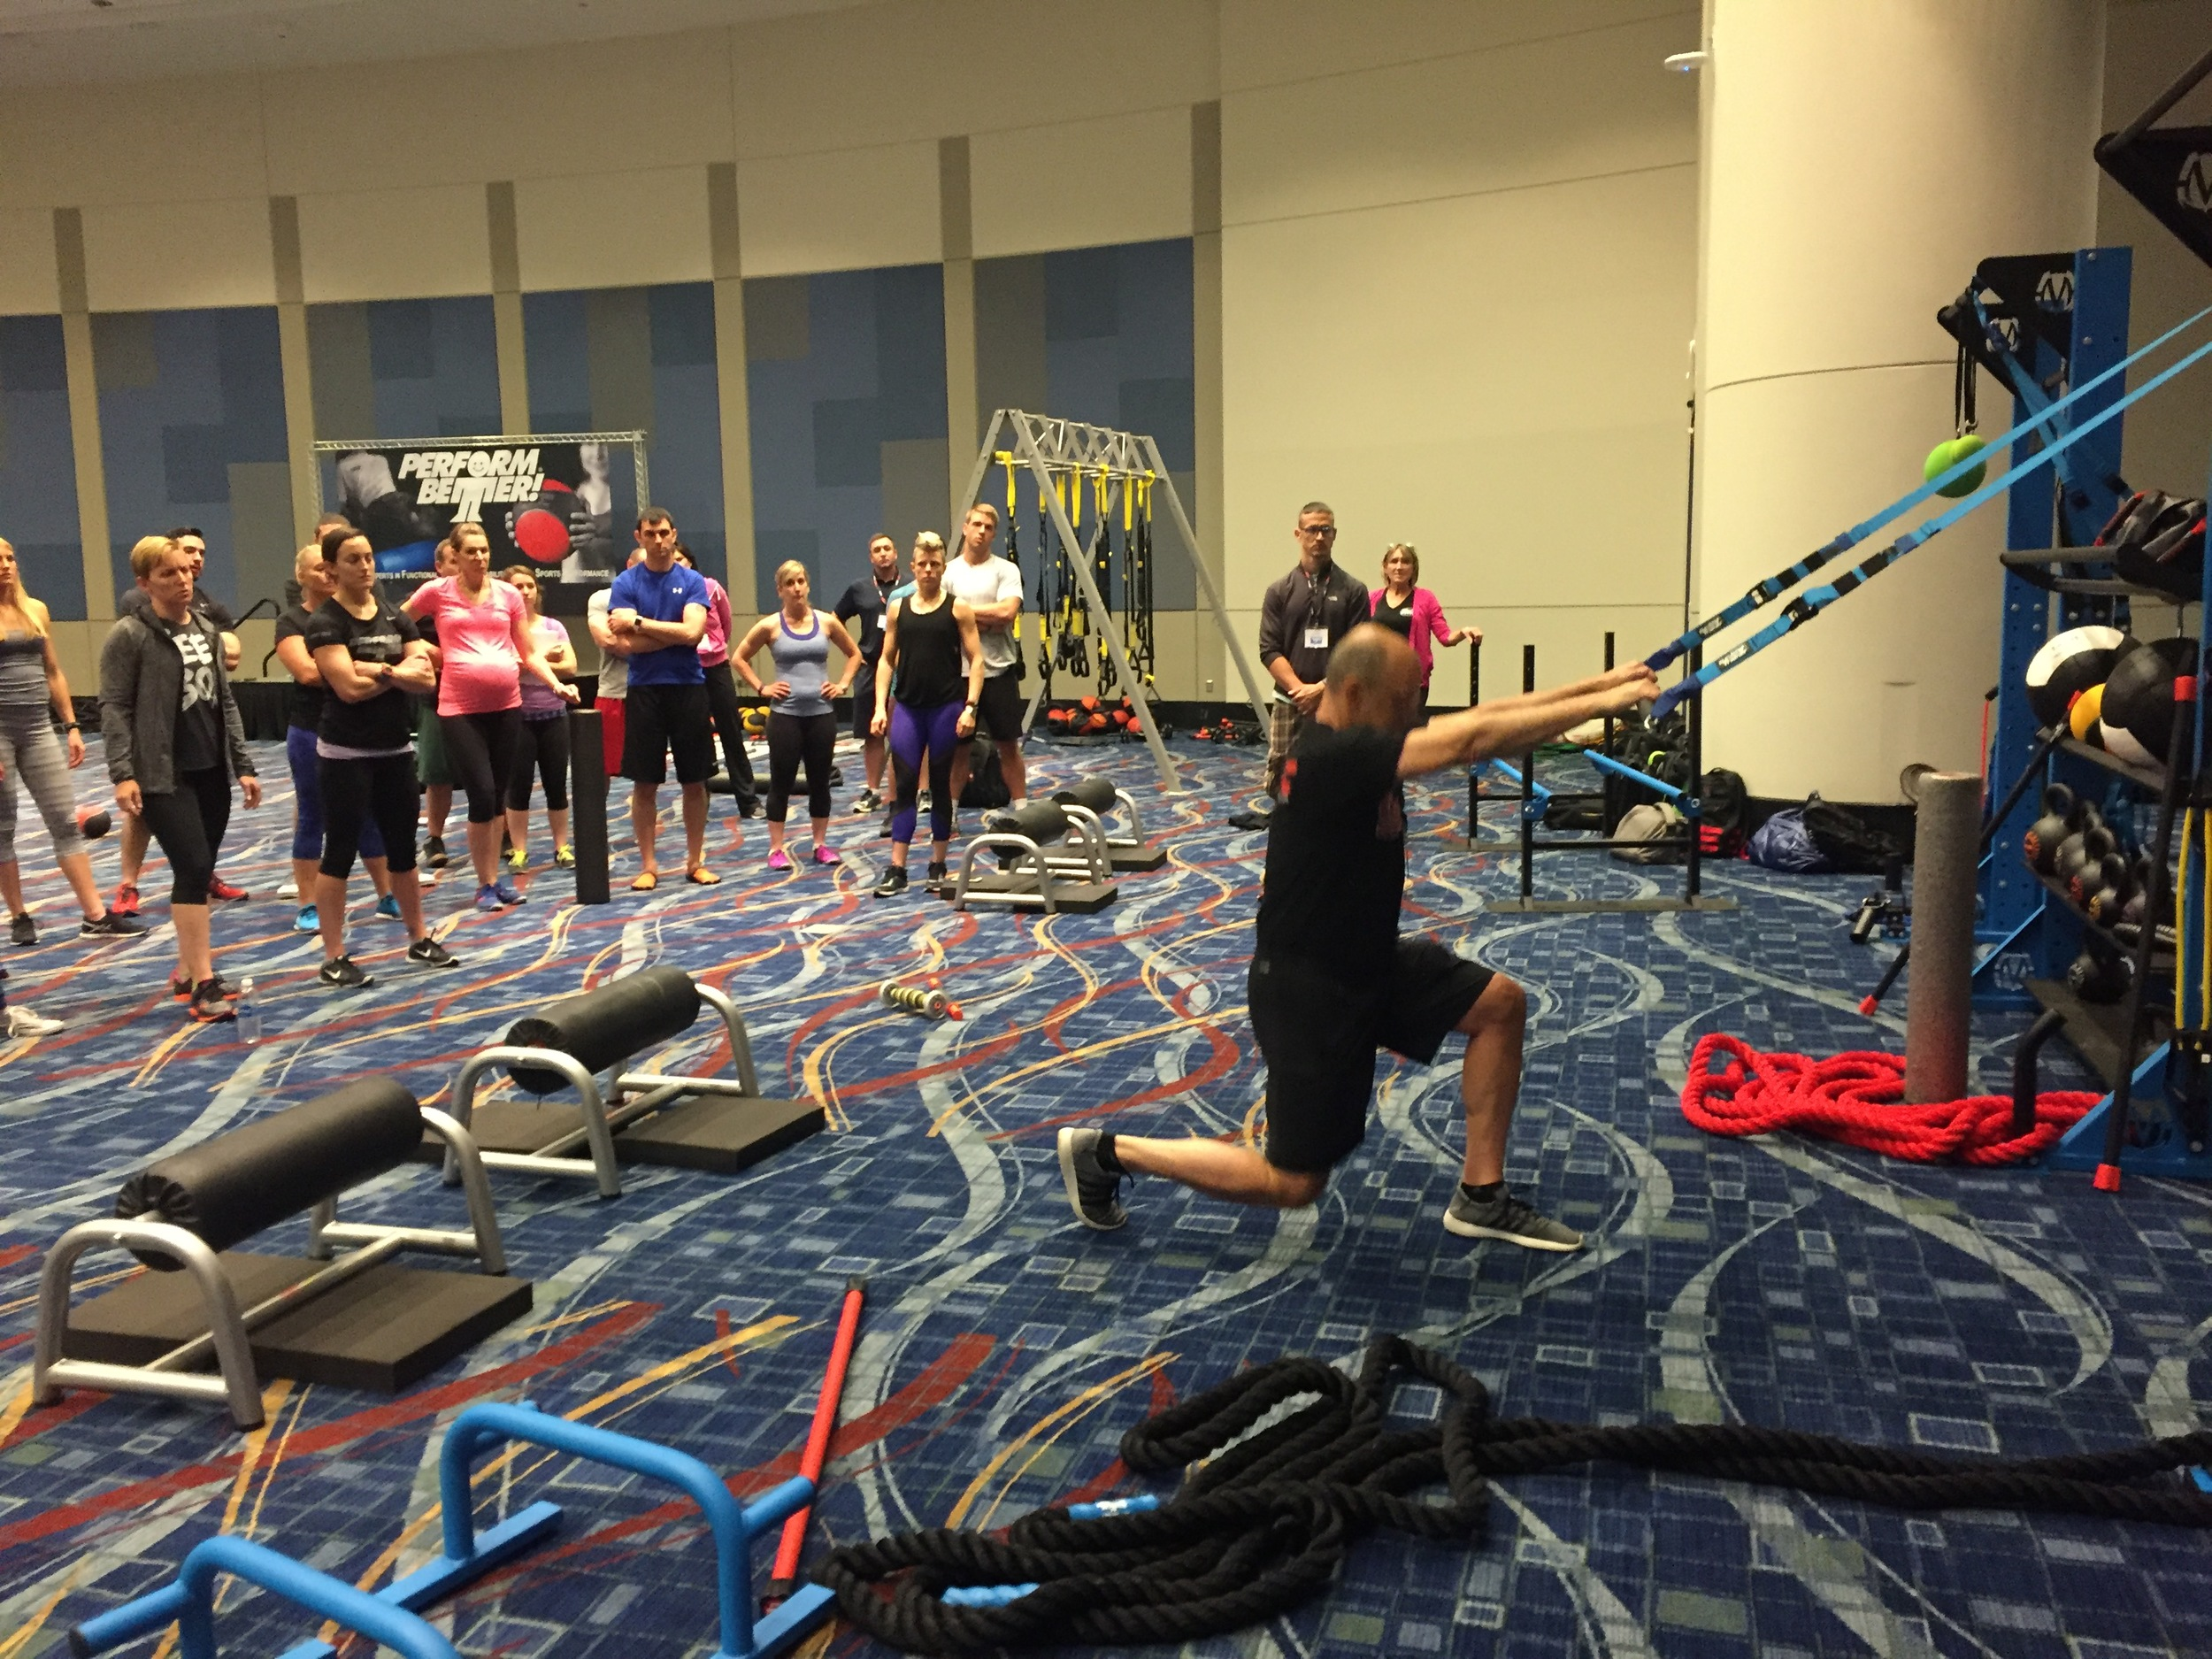 Mike Boyle teaching bodyweight exercise